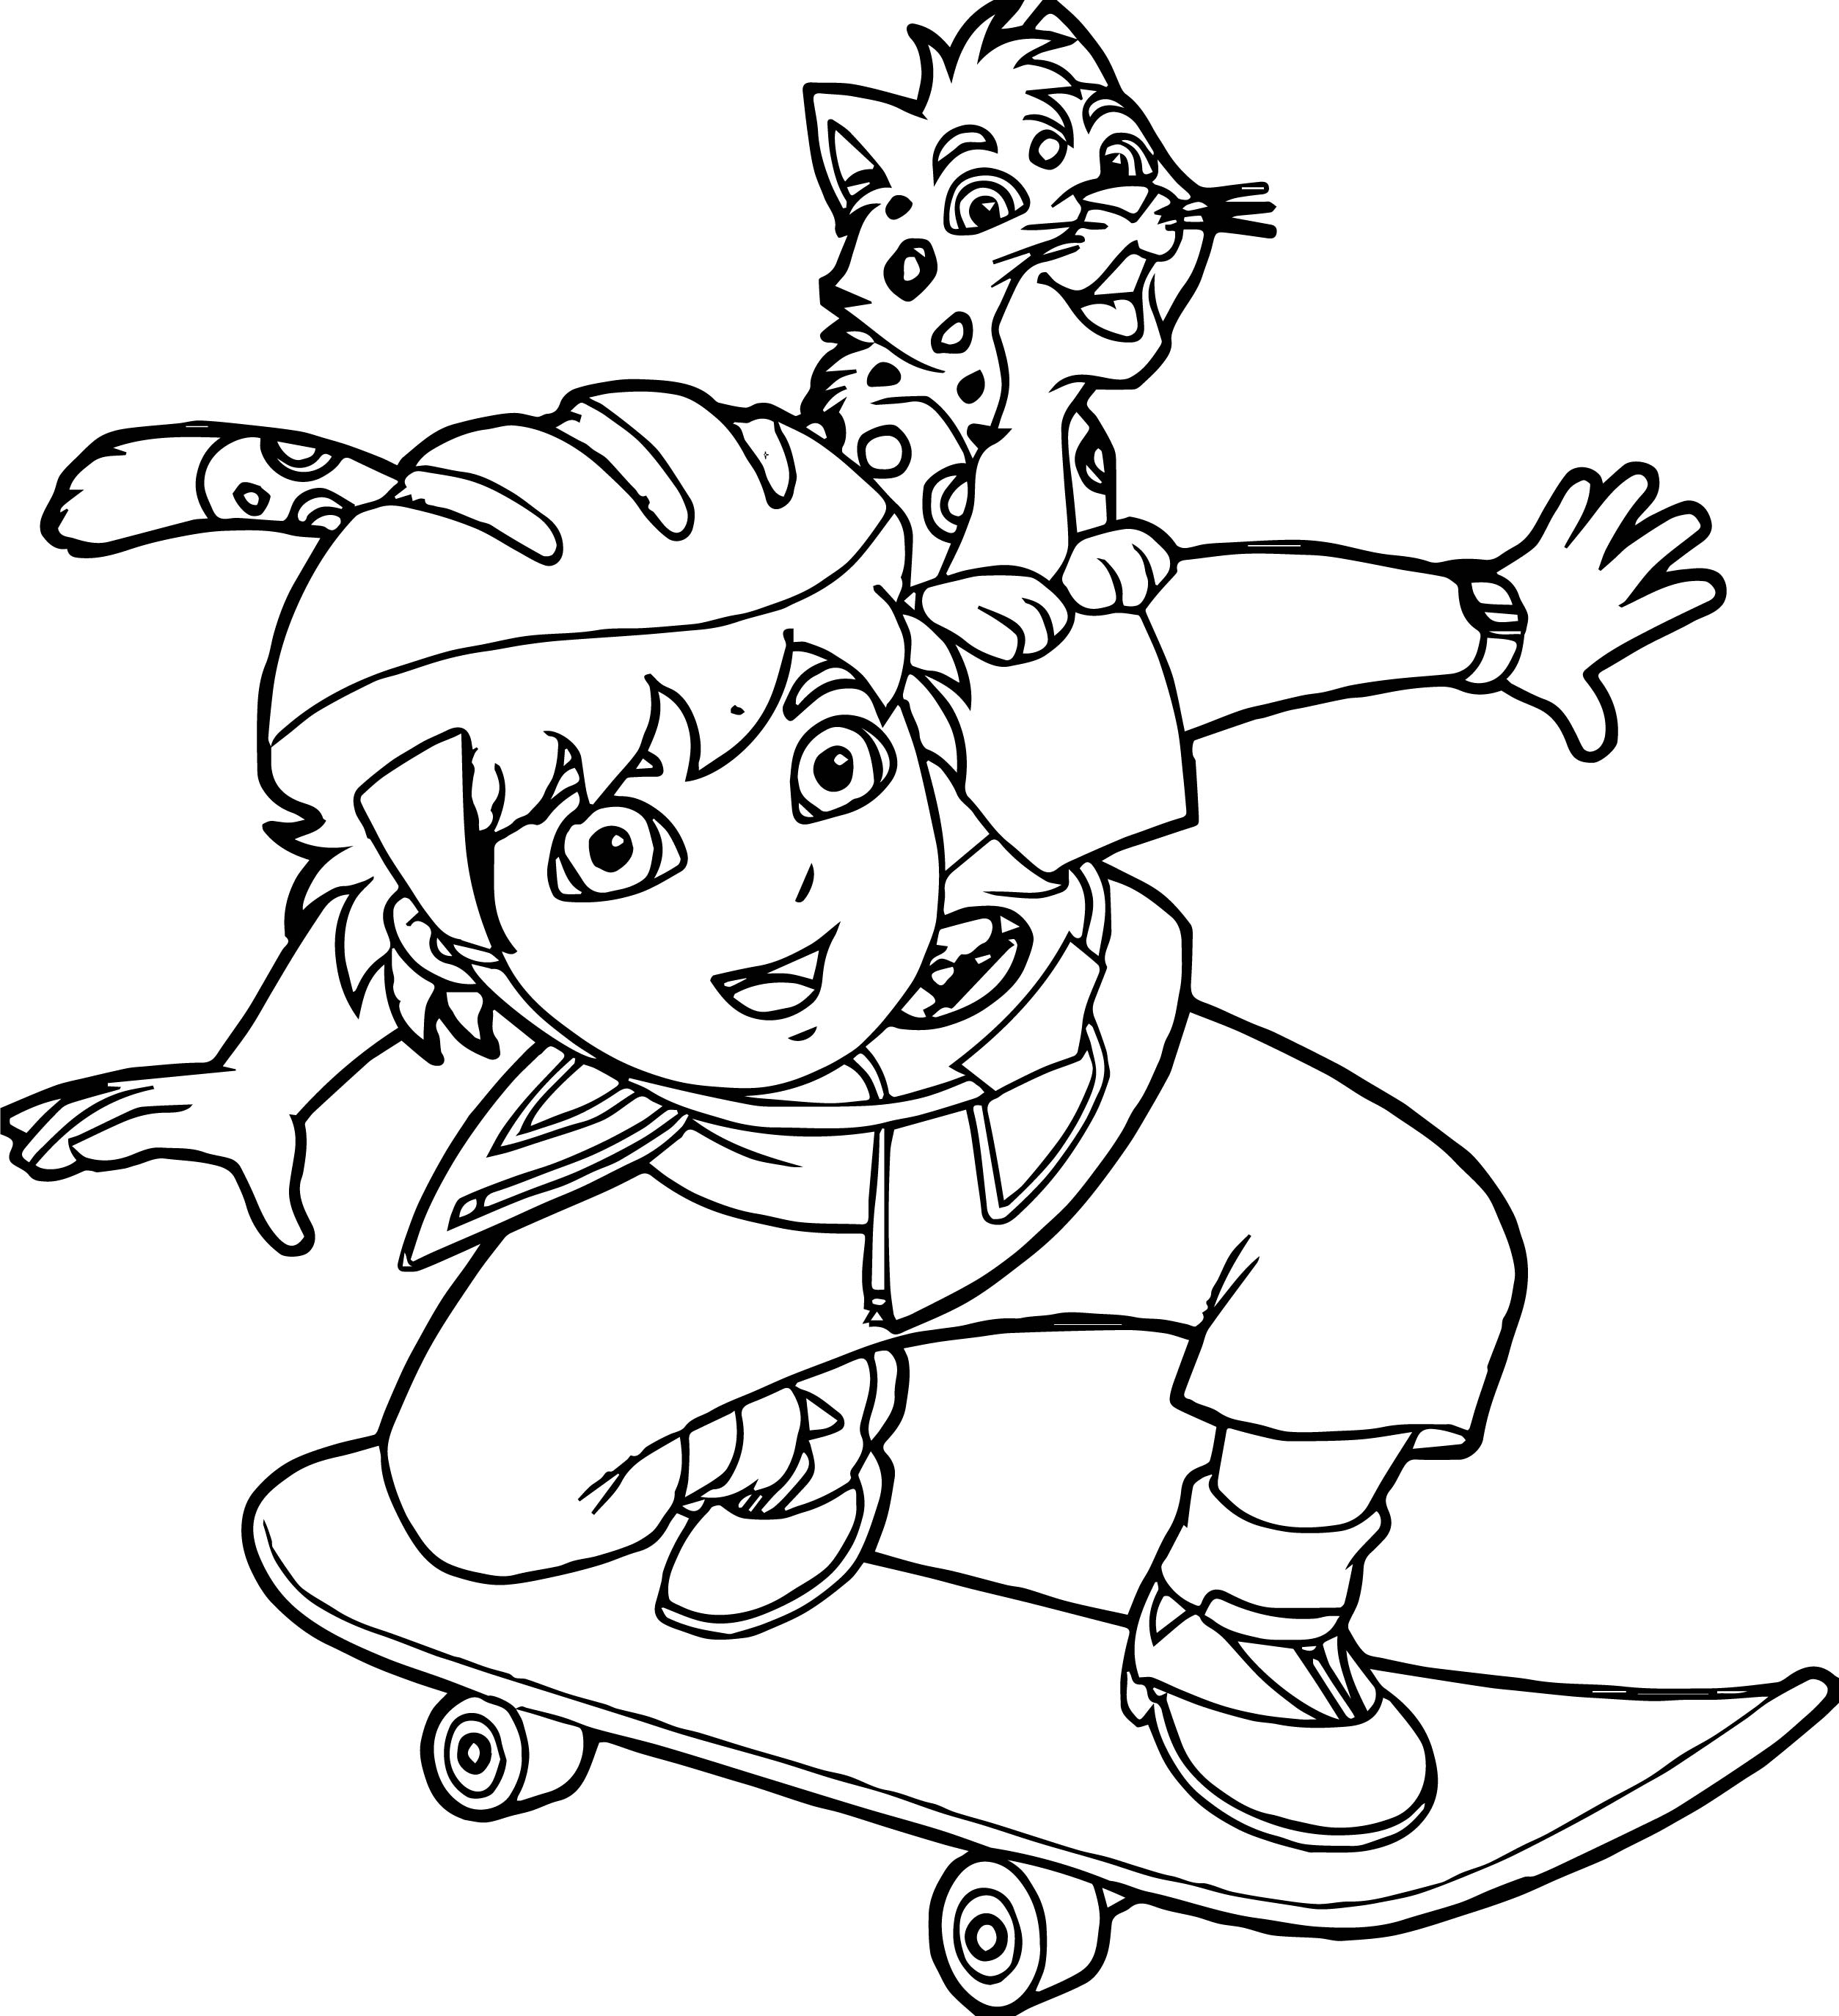 Go Diego Go And Lion Skate Coloring Page